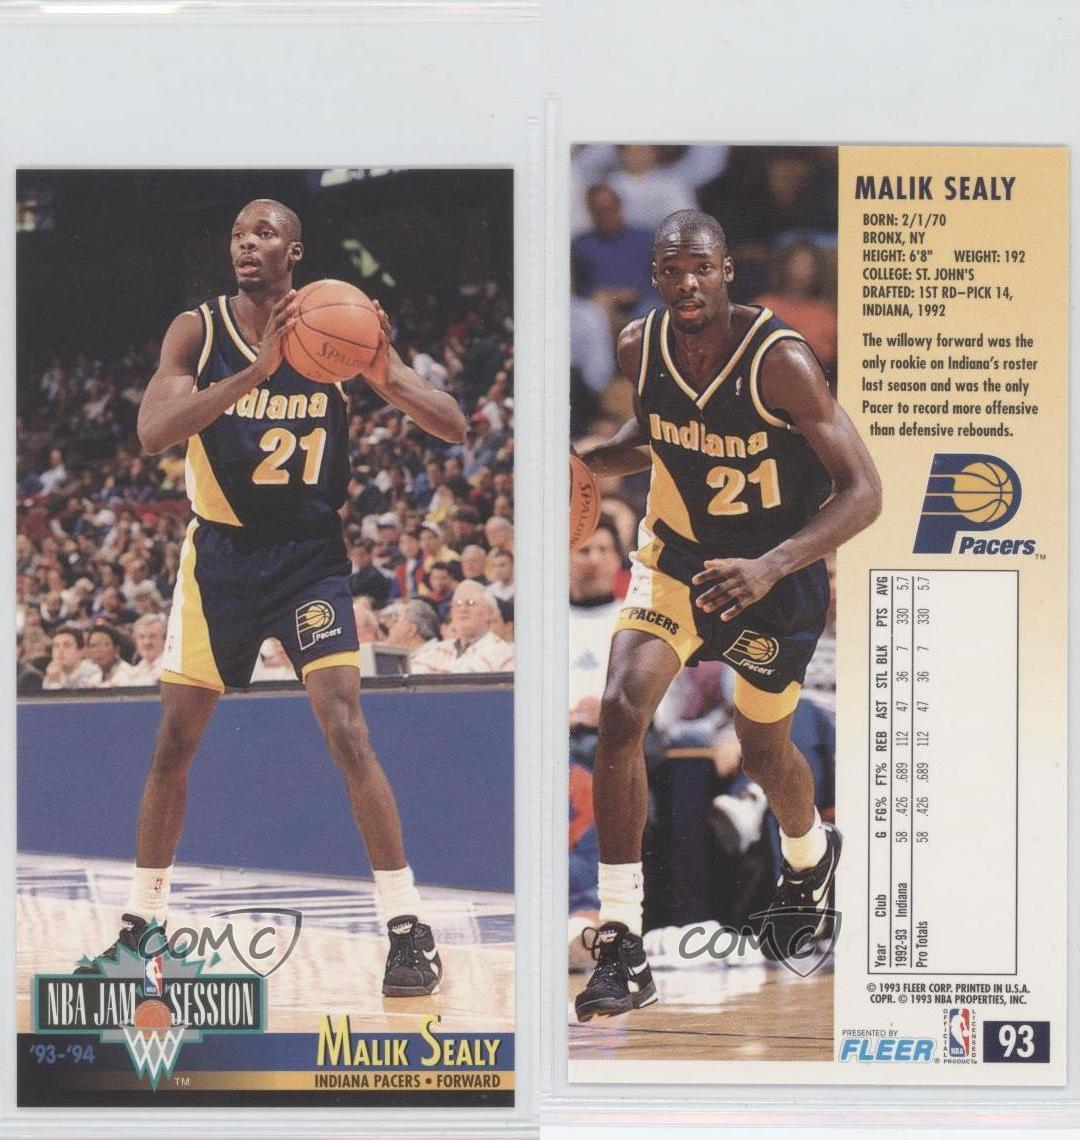 1993-94 NBA Jam Session #93 Malik Sealy Indiana Pacers